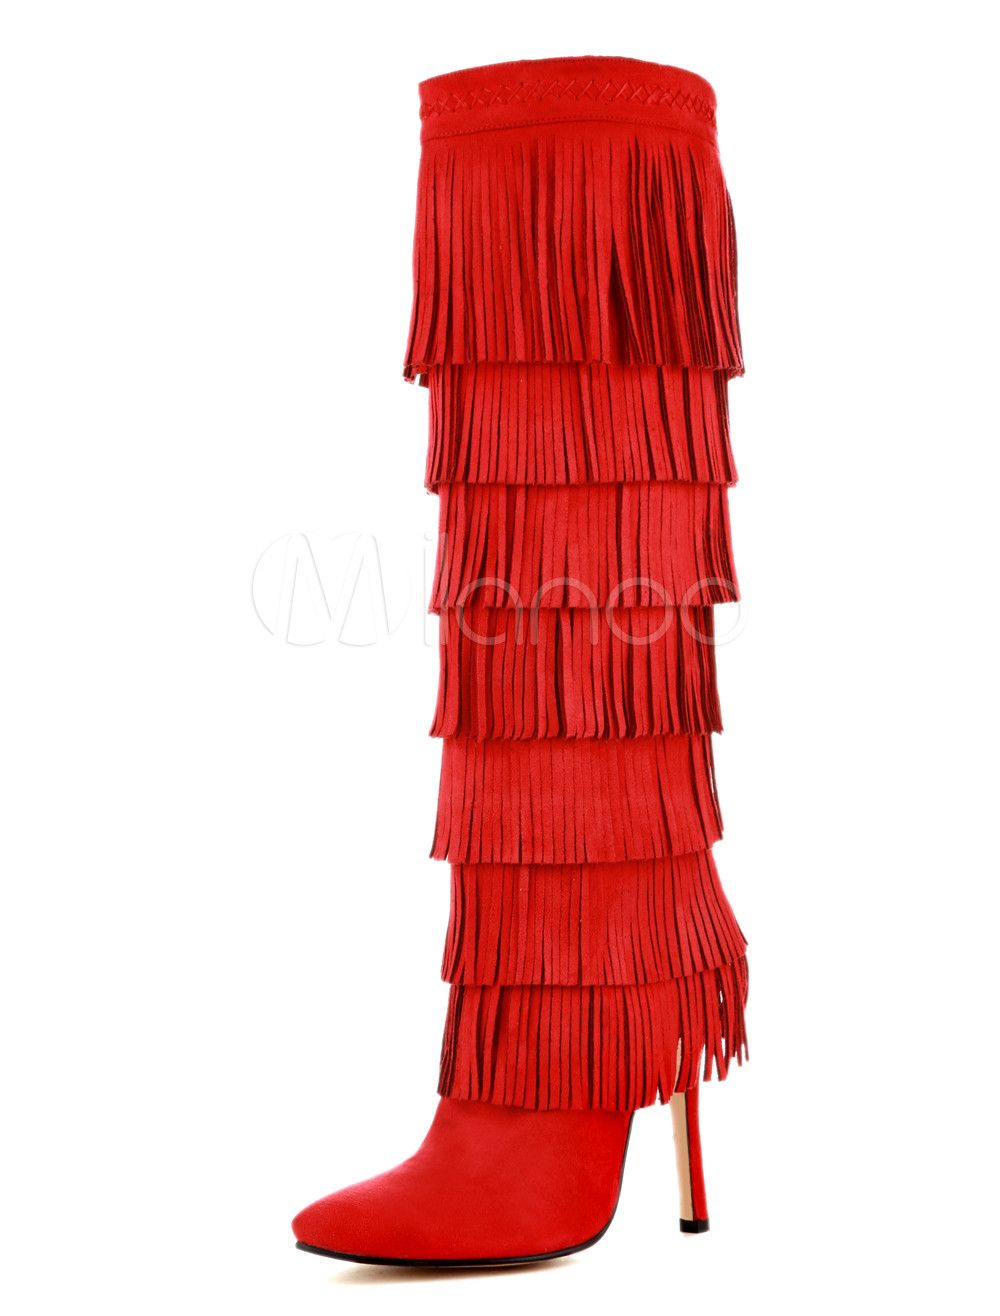 #Milanoo.com Ltd          #Over the Knee Boots      #Pointed #Fringe #Sheepskin #Suede #Women's #Over #Knee #Boots                Red Pointed Toe Fringe Sheepskin Suede Women's Over the Knee Boots                                      http://www.snaproduct.com/product.aspx?PID=5700290